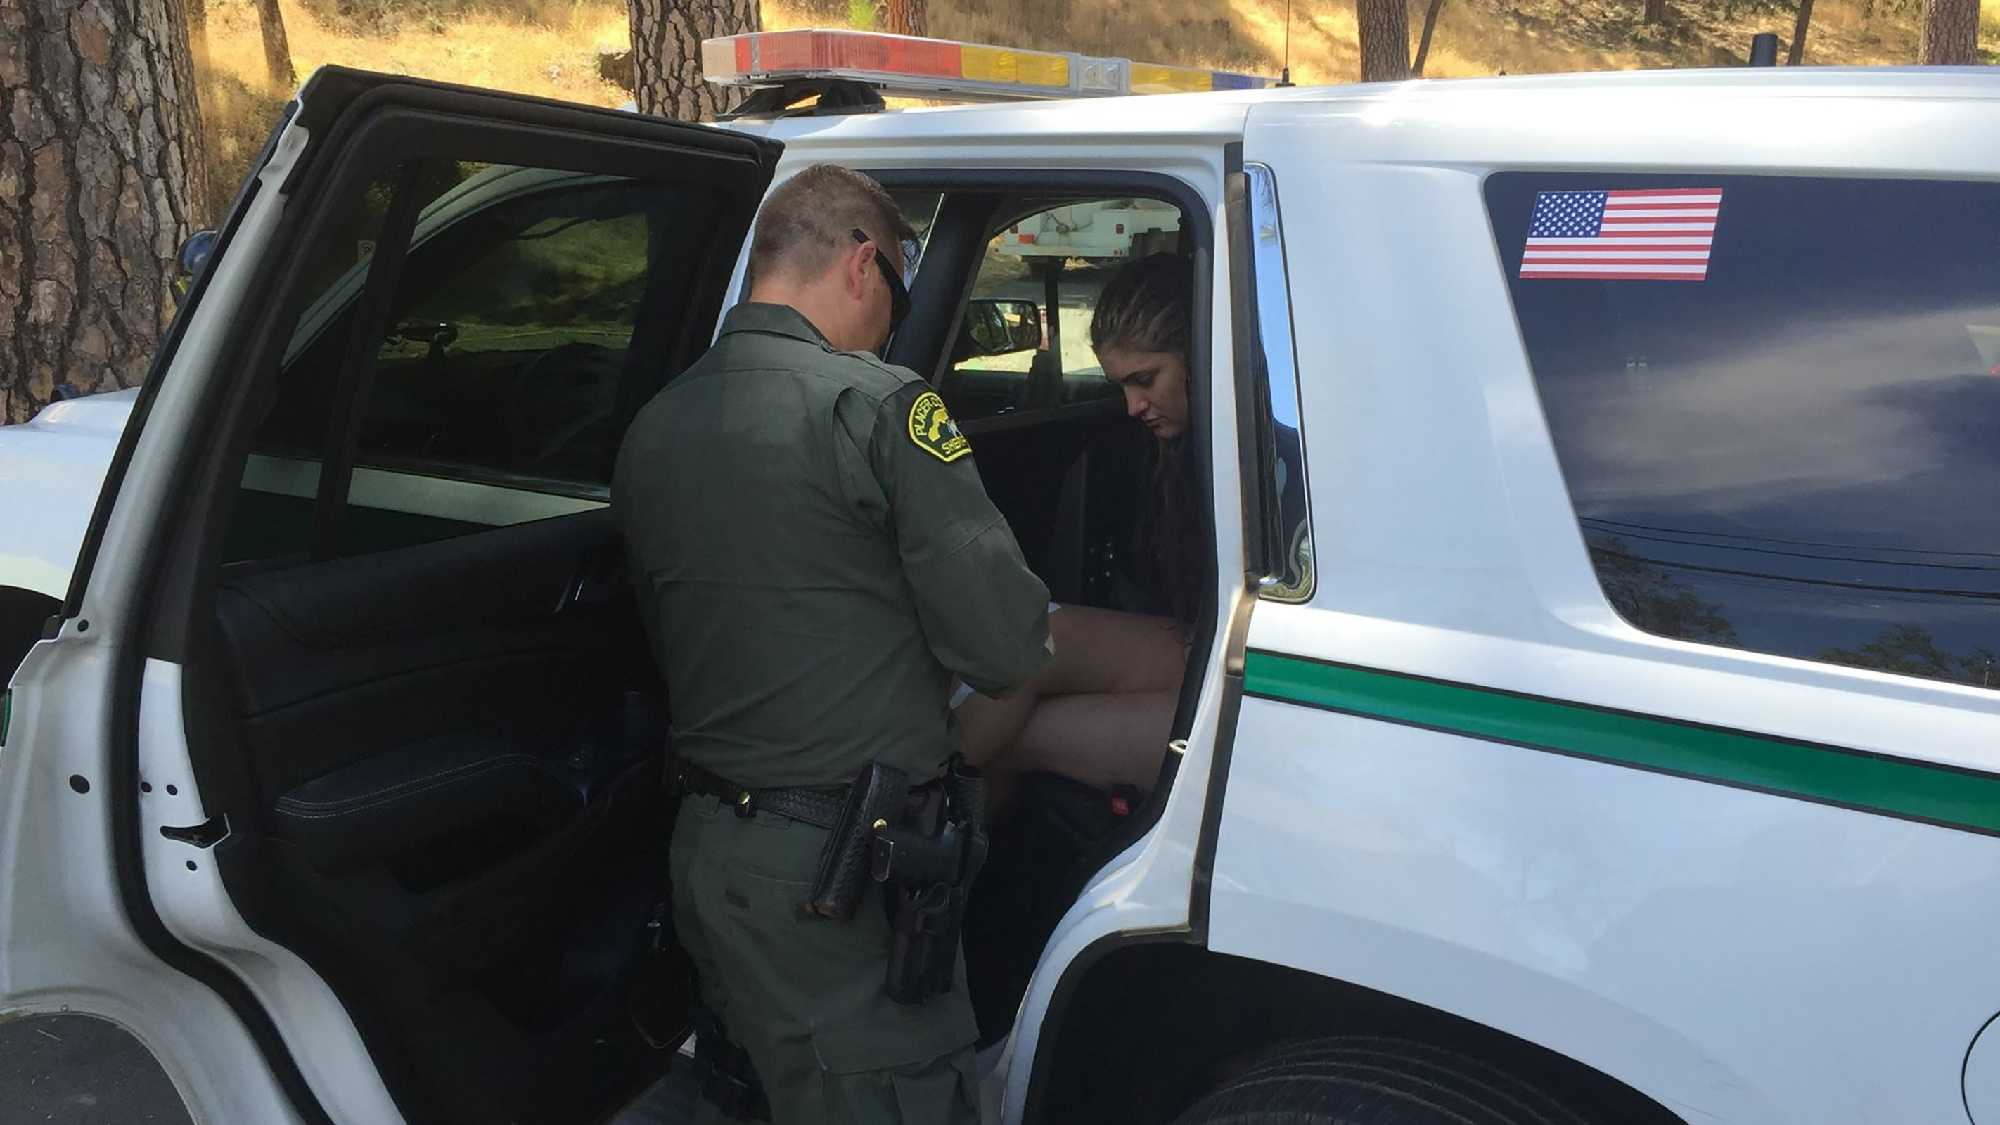 Cortney Marie Halley, 21, was captured Friday afternoon by Placer County Sheriff's deputies.